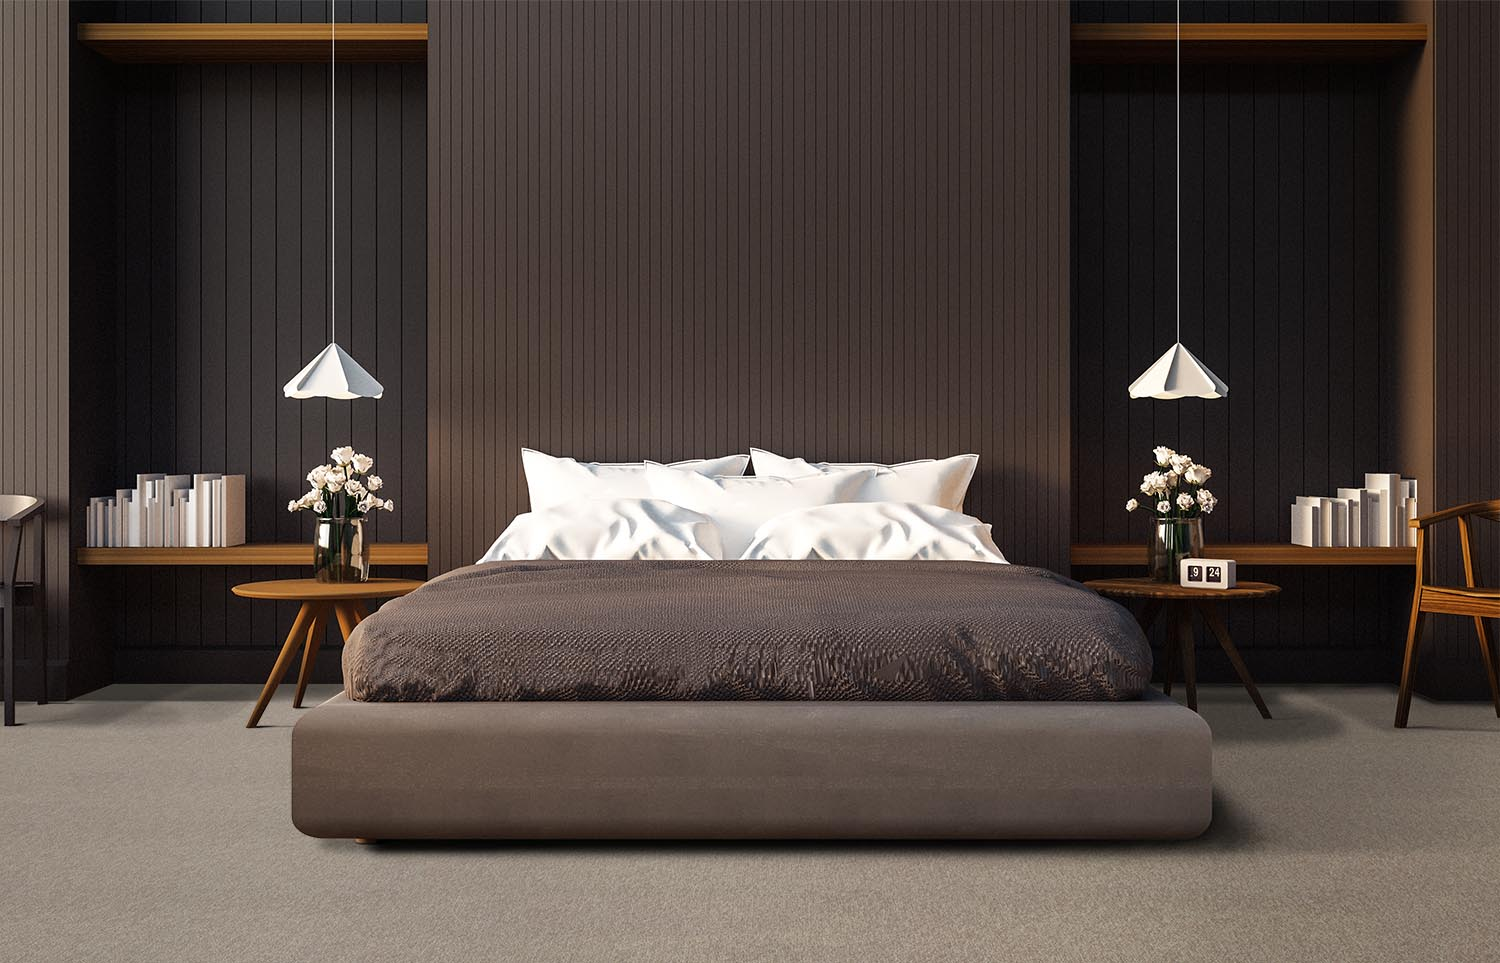 Influence - Tribe Fuel contemporary bedroom